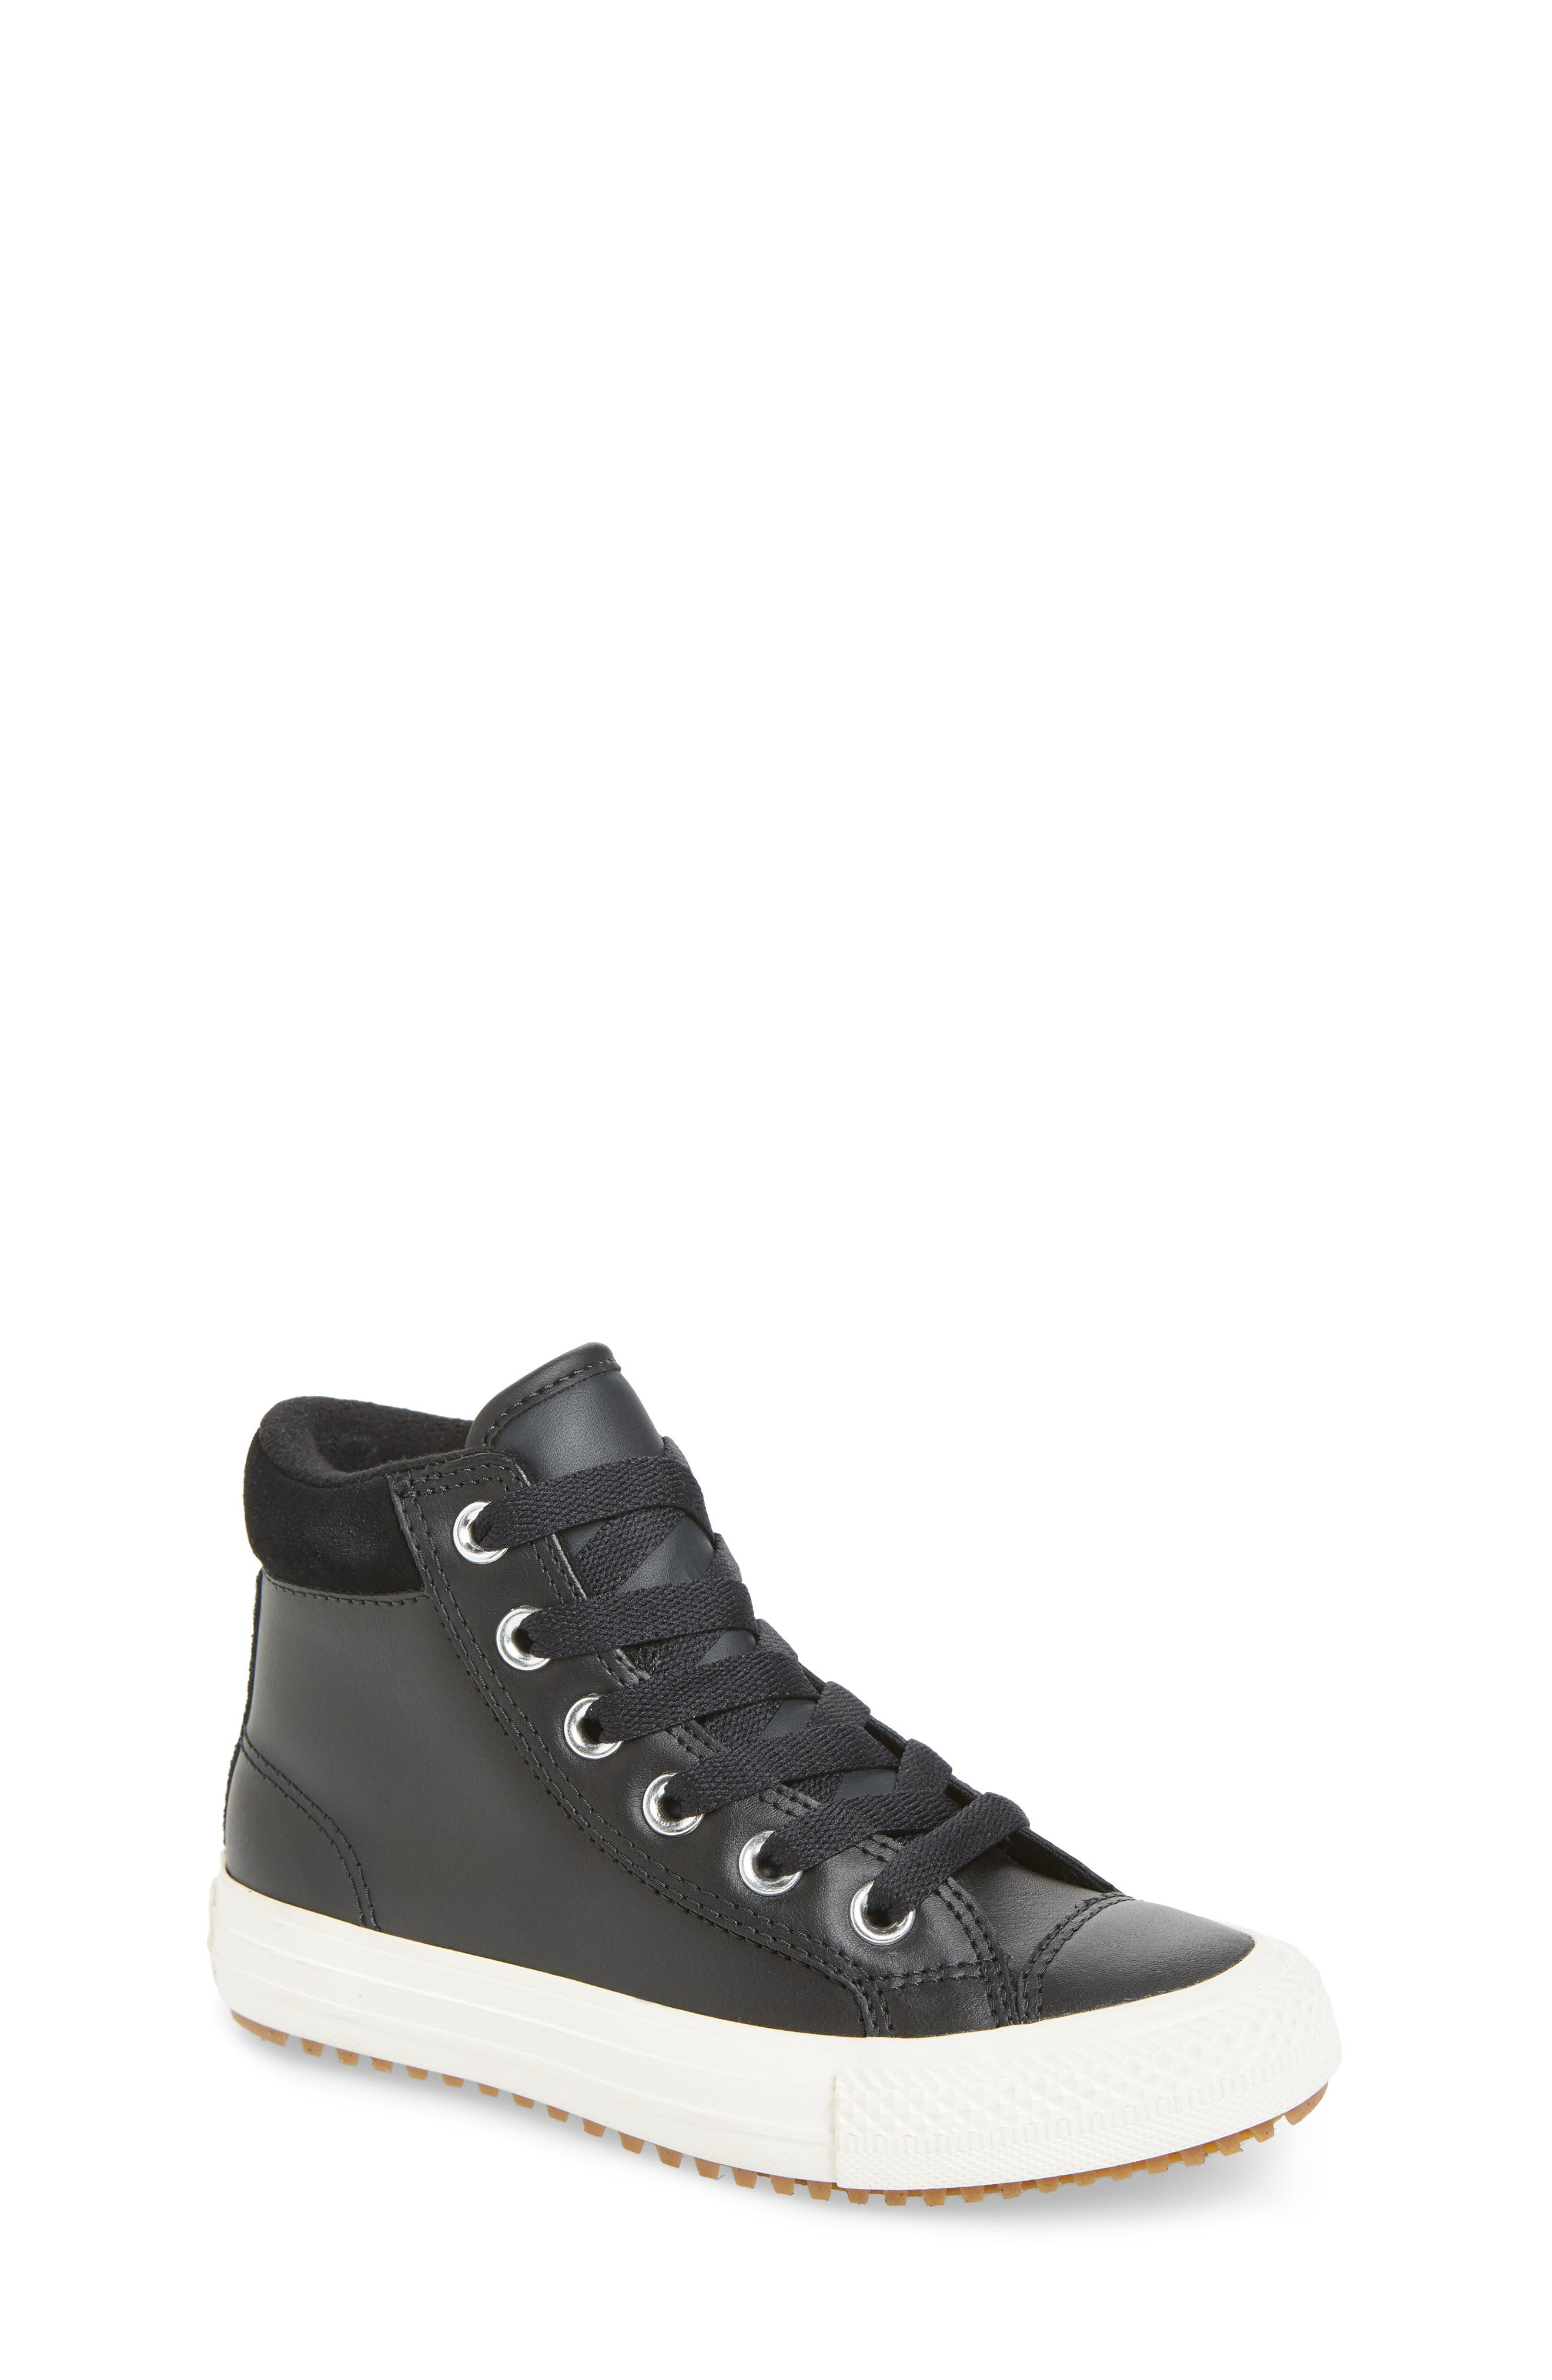 CONVERSE Chuck Taylor<sup>®</sup> All Star<sup>®</sup> PC High Top Sneaker, Main, color, BLACK